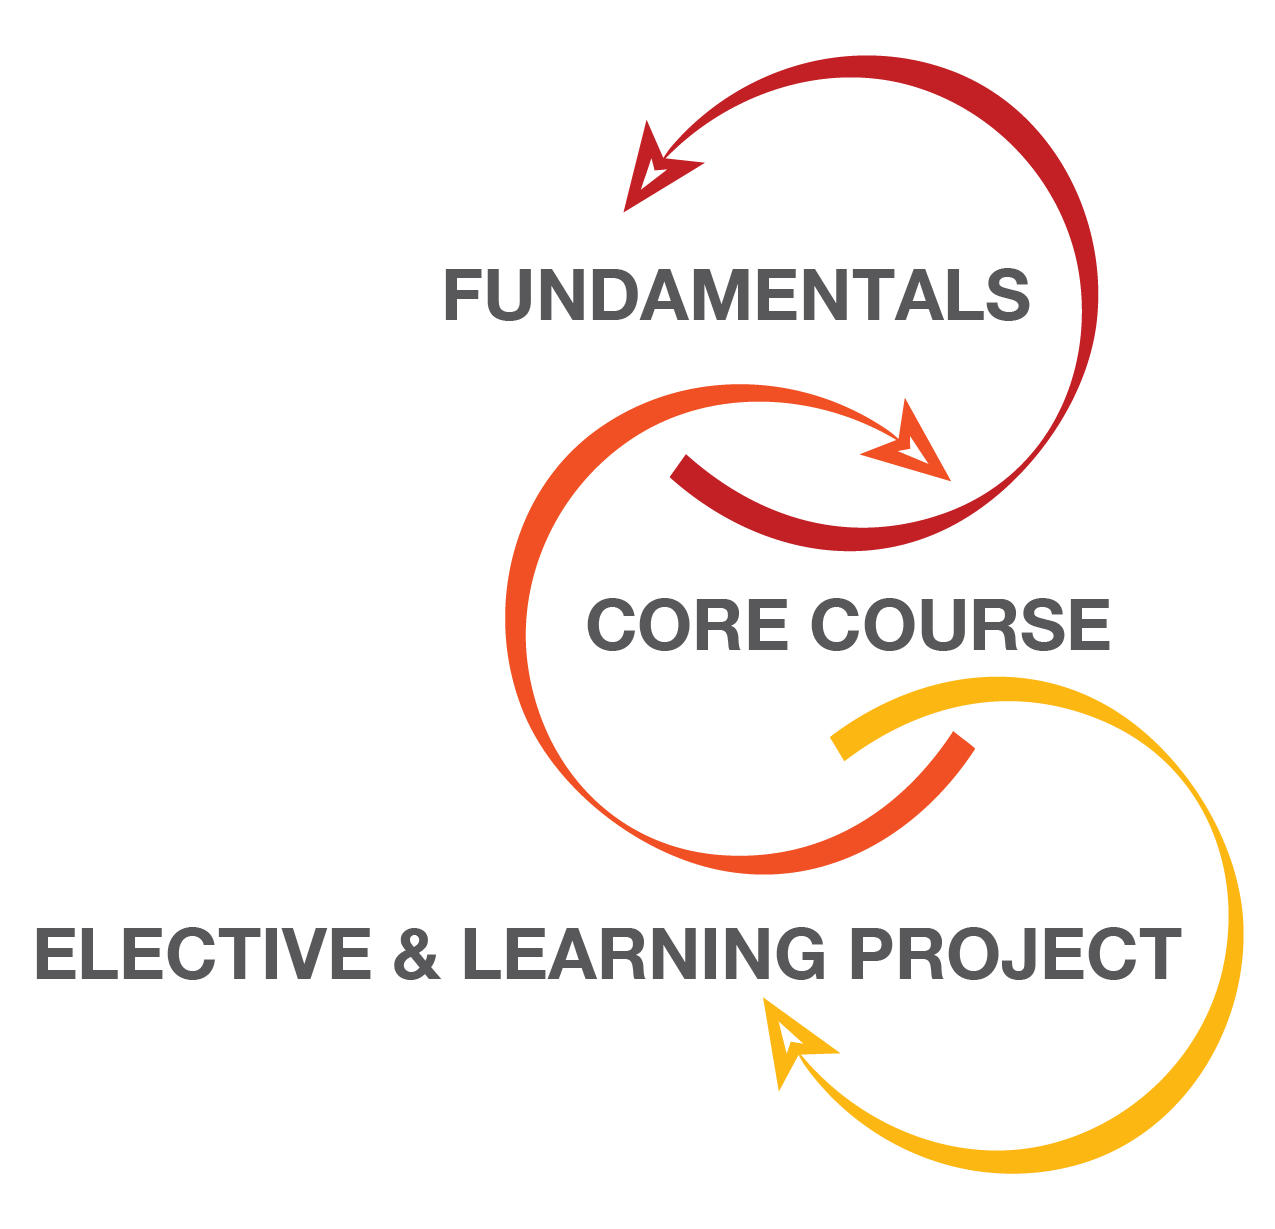 The Goal Of The Atd Master Instructional Designer Certificate Program Is To Give You New Approaches To Instr Instructional Design Instruction Learning Projects